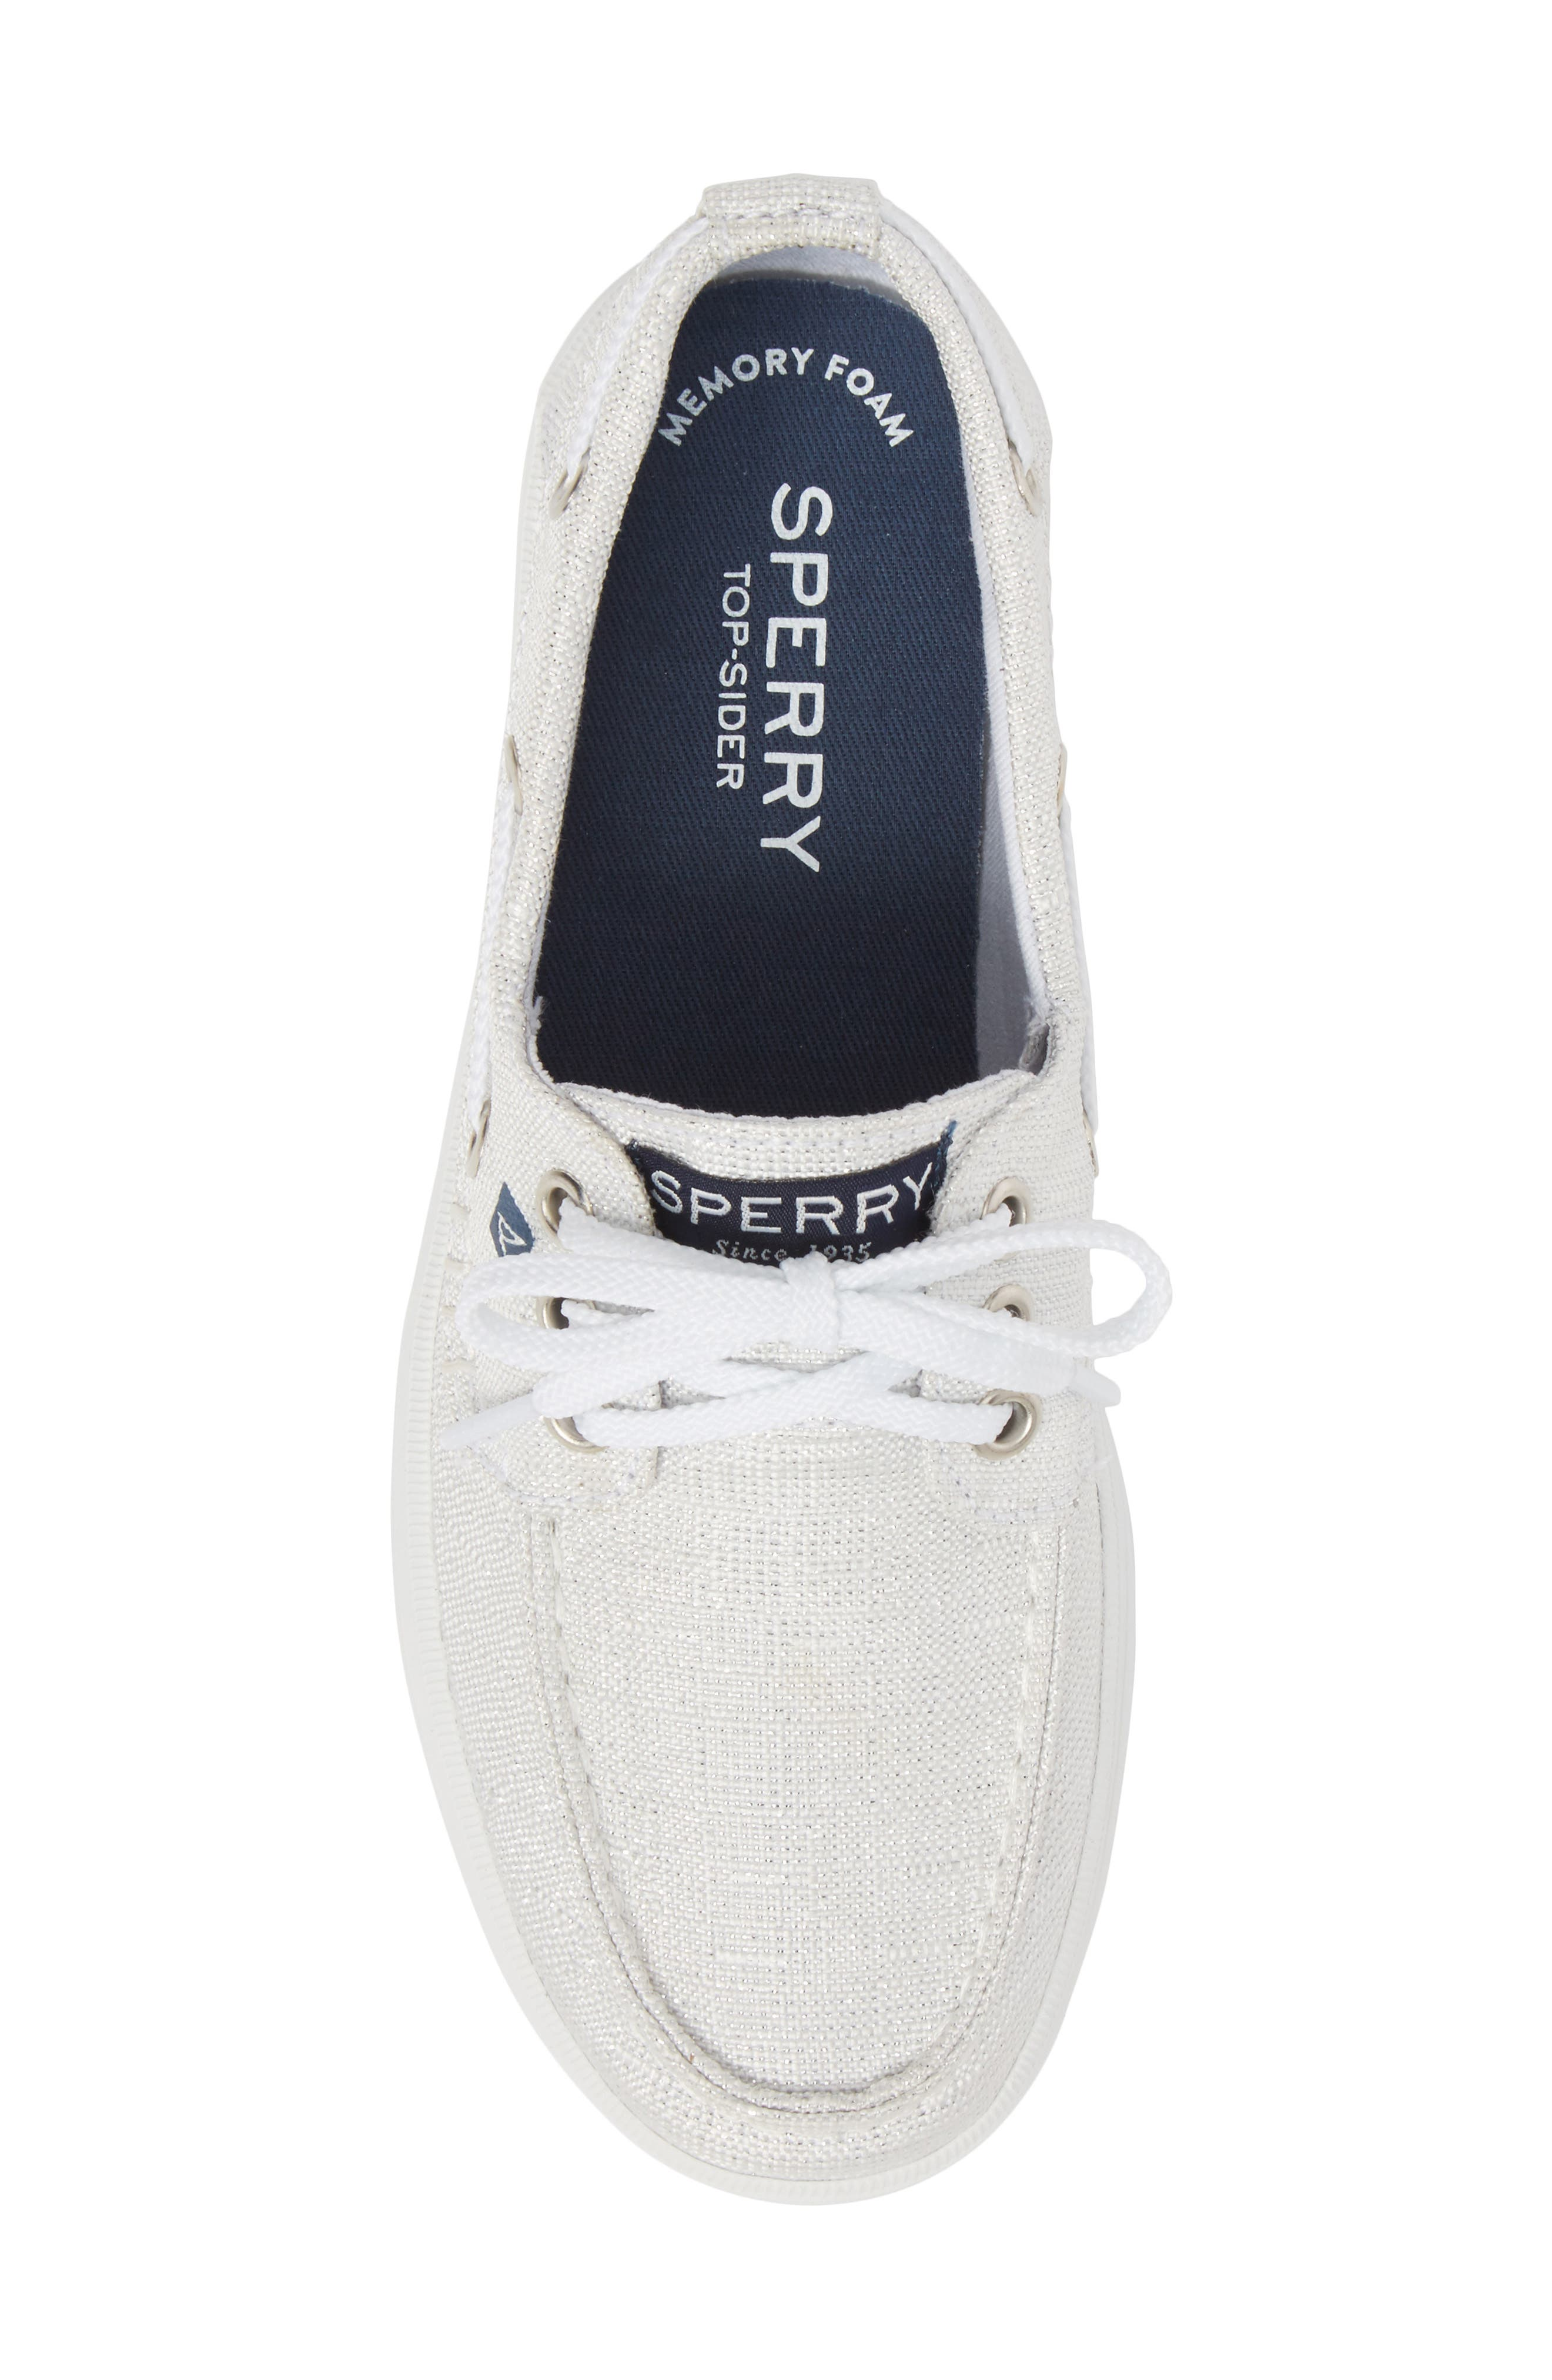 Crest Resort Boat Shoe,                             Alternate thumbnail 5, color,                             White/ Silver